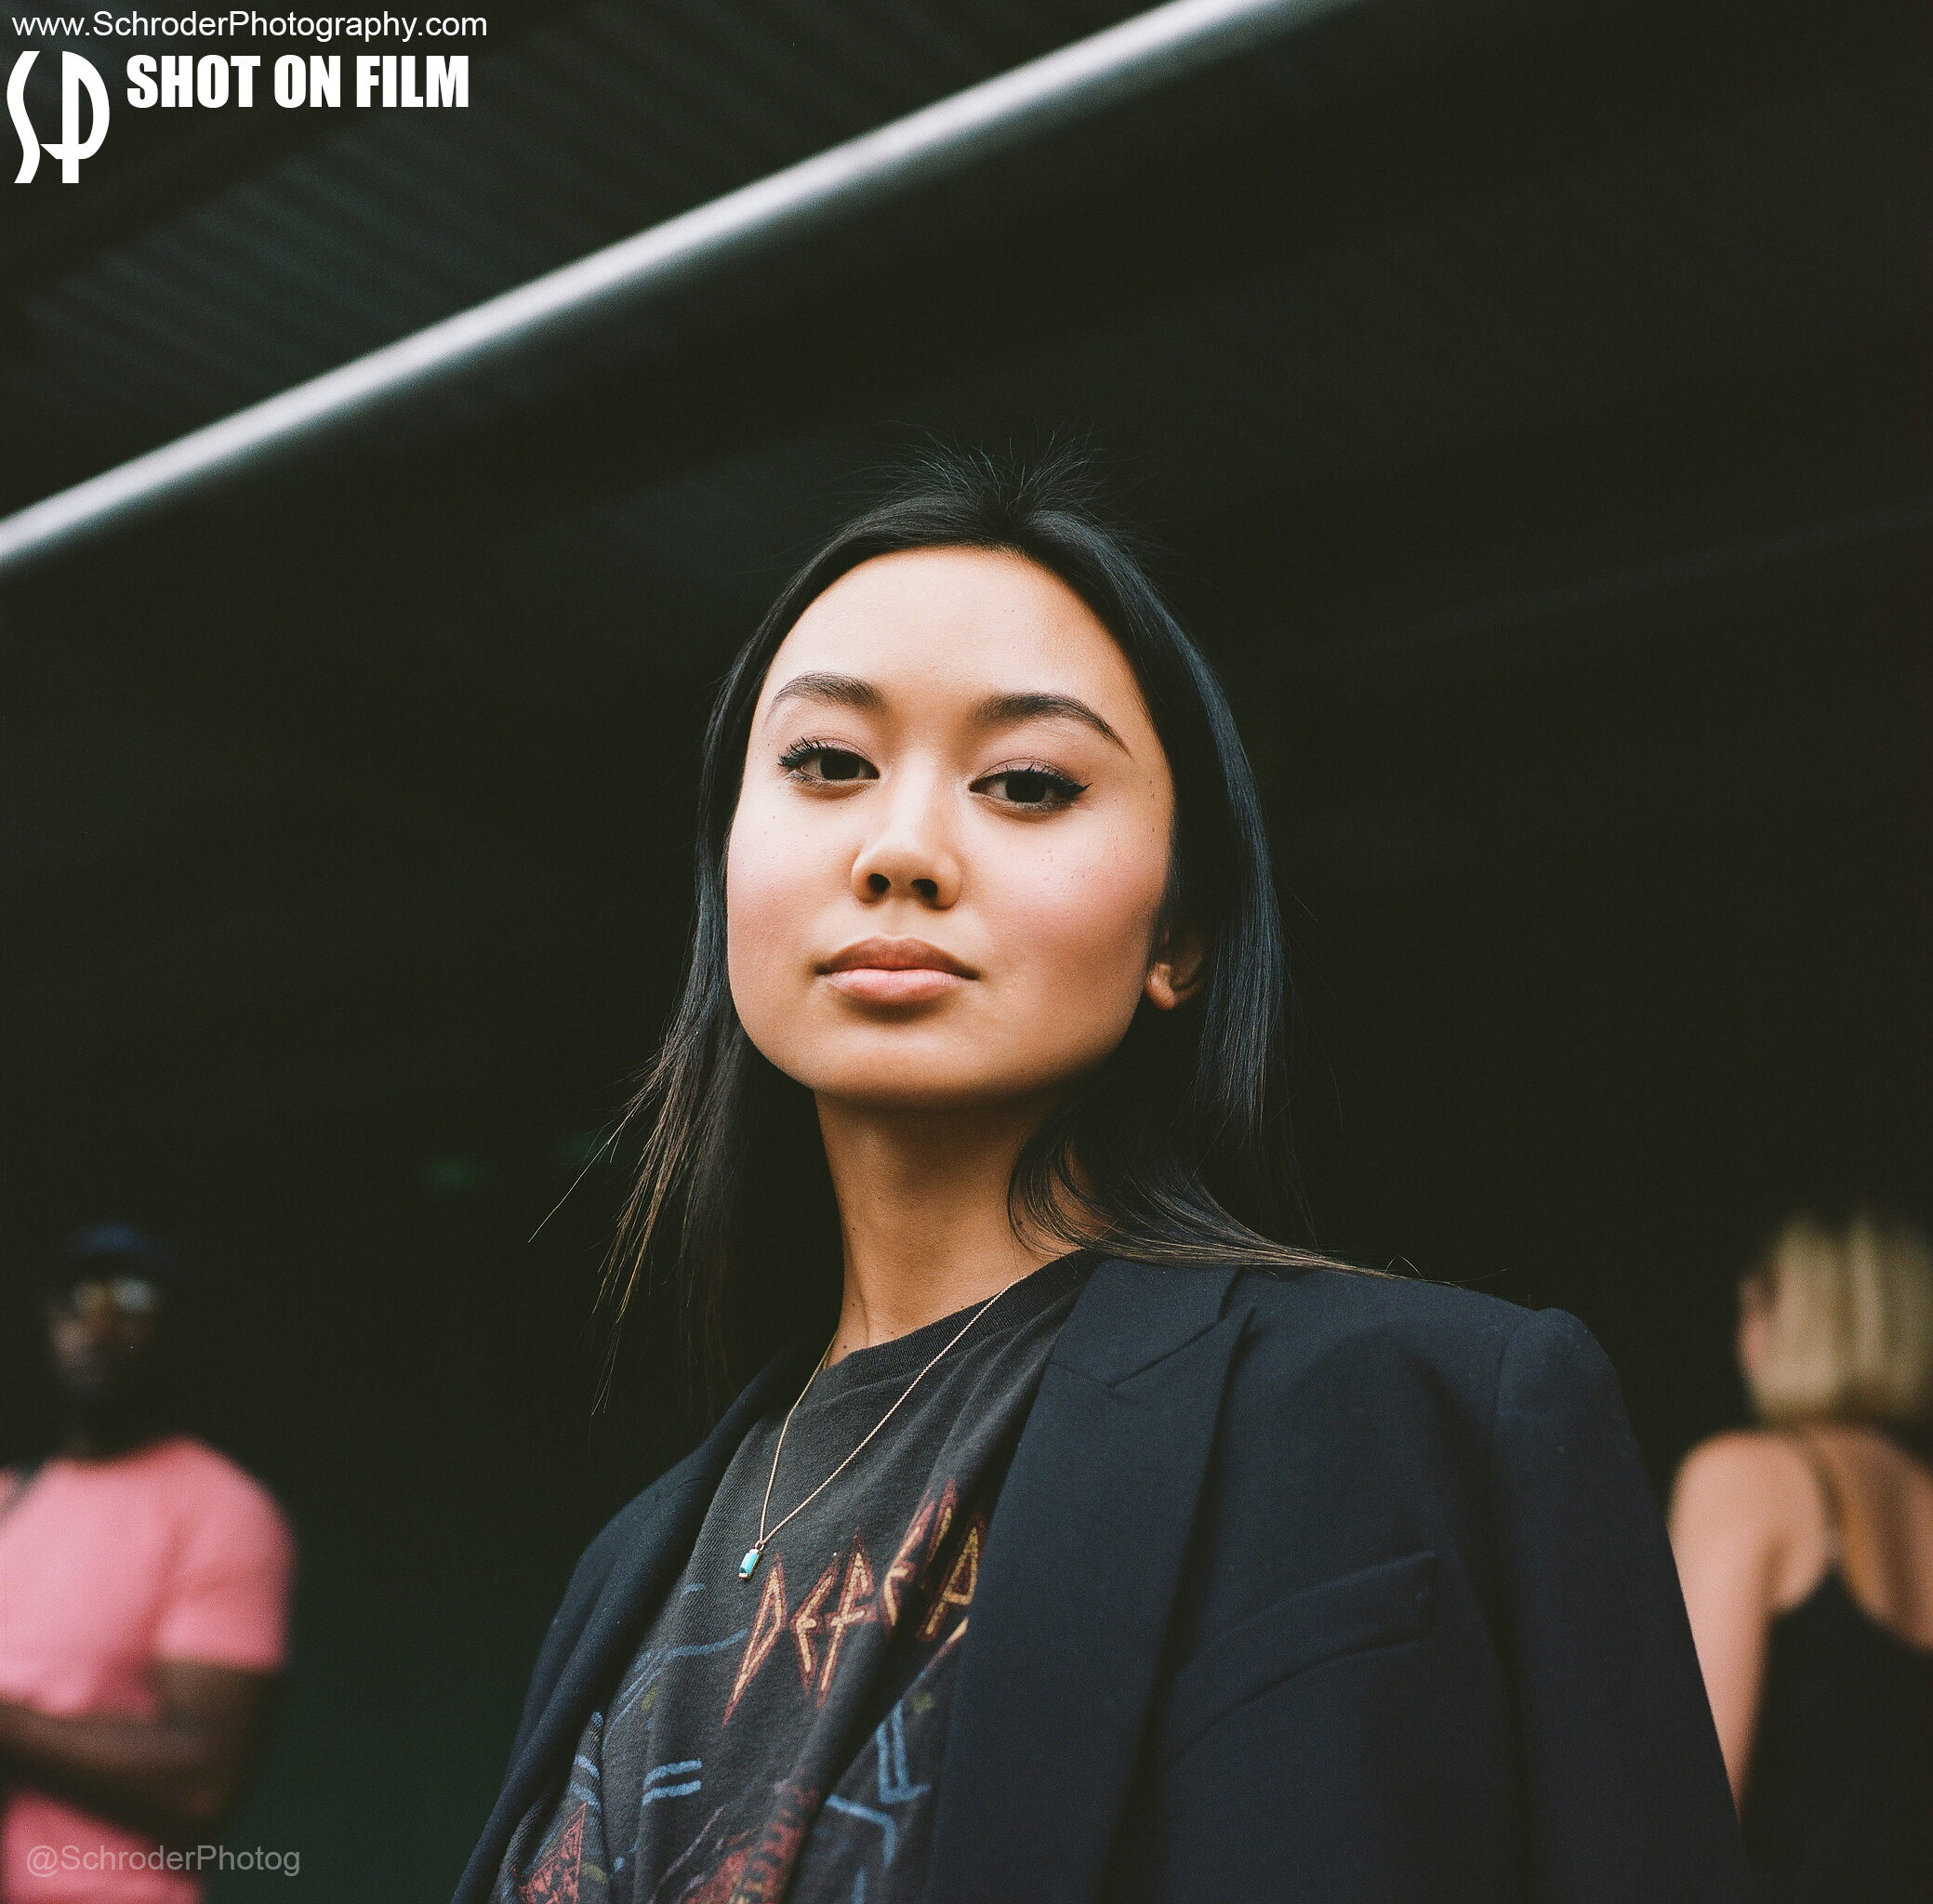 NY Fashion Week 2018 by SchroderPhotography.com